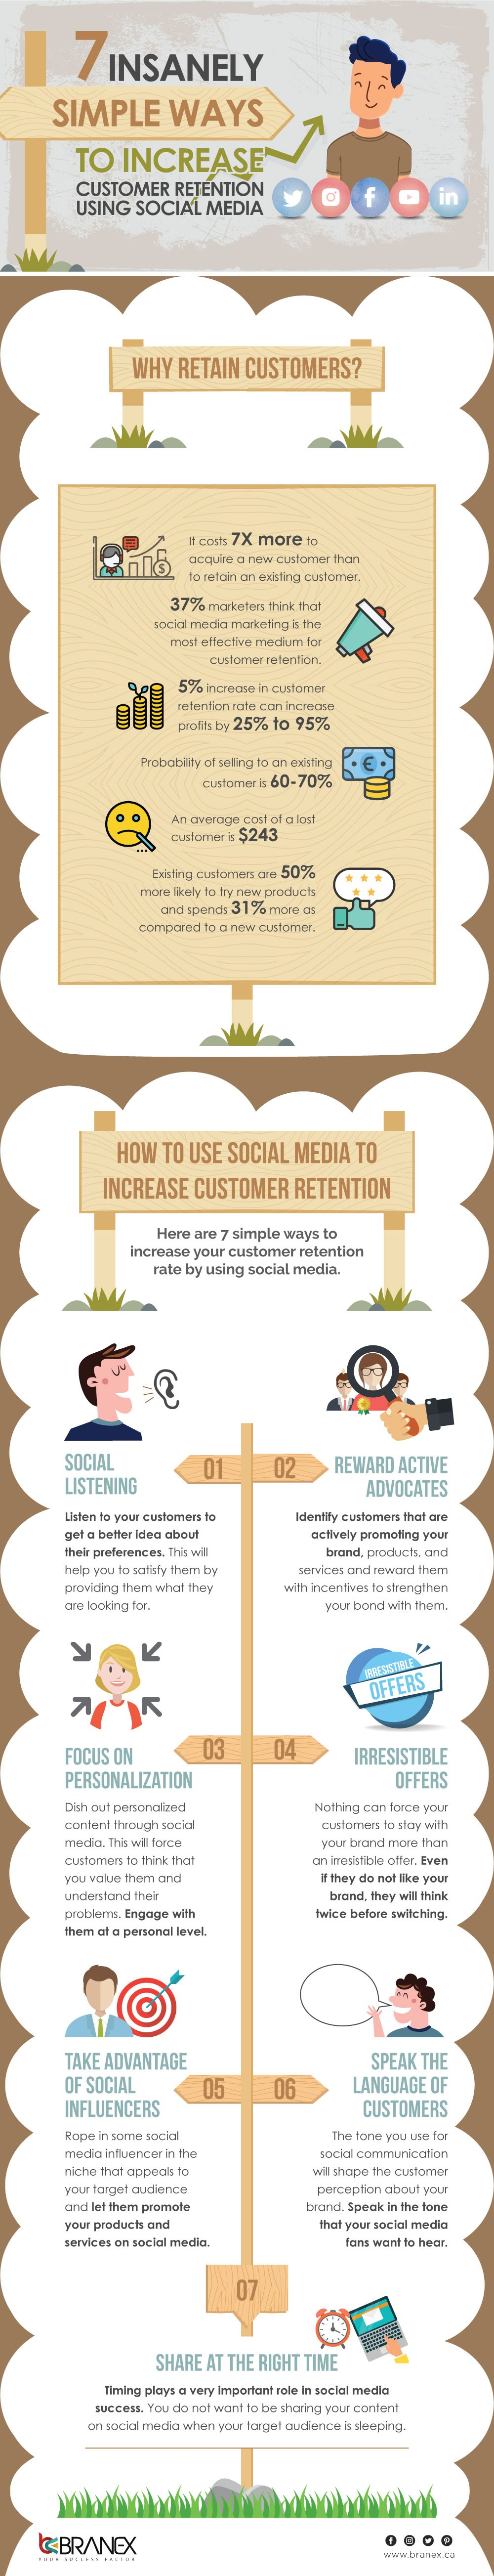 Insanely Simple Ways To Increase Customer Retention Using Social Media - #infographic